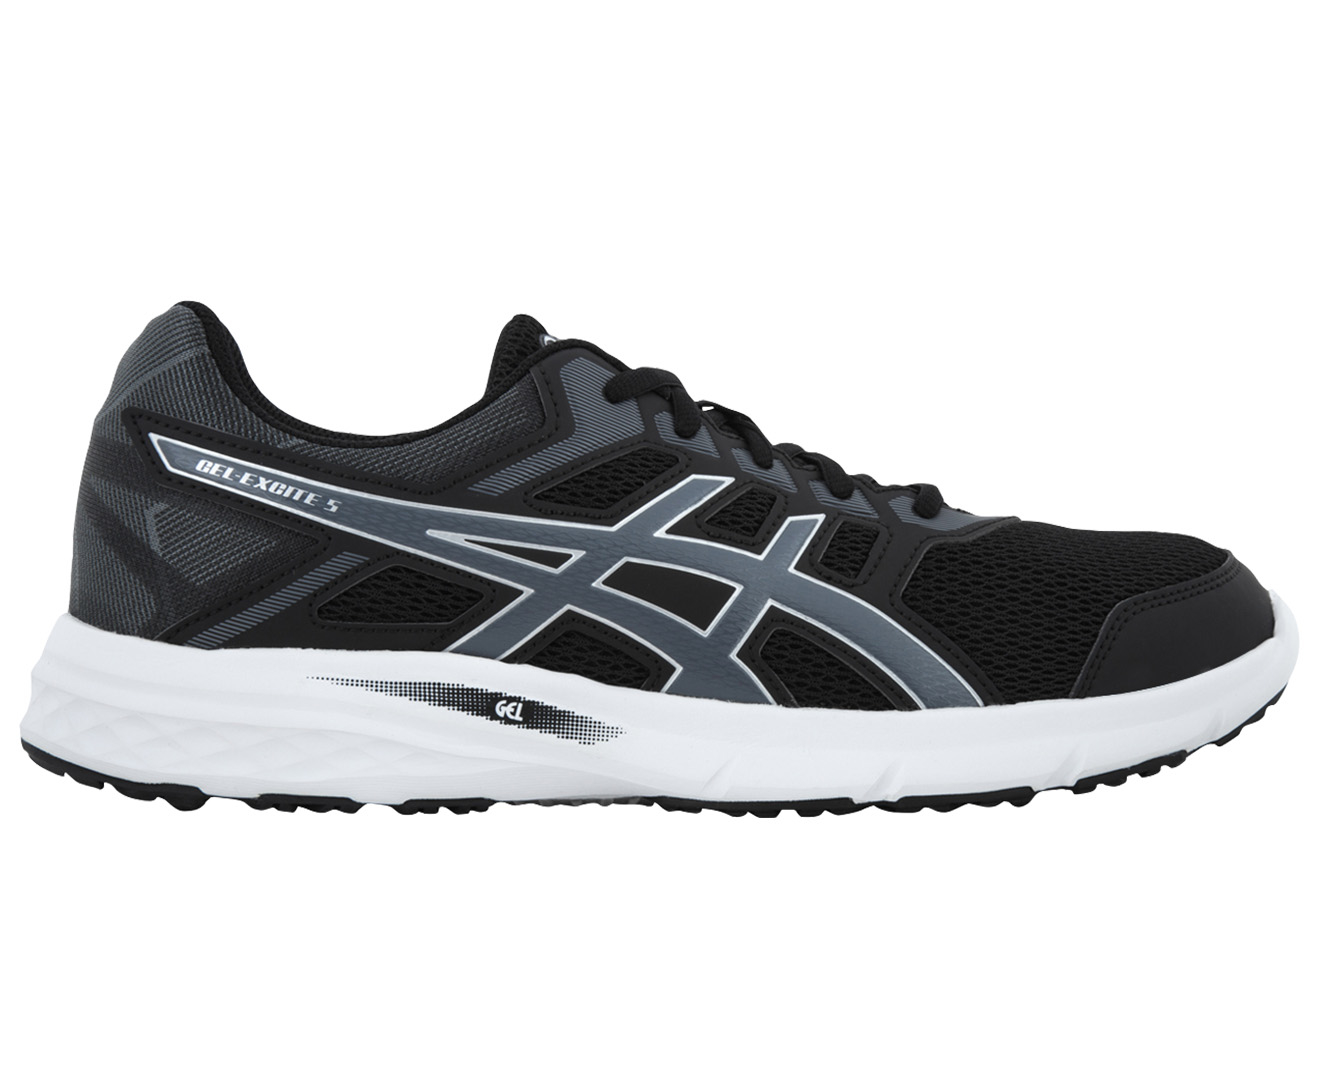 ASICS Men's GEL-Excite 5 Shoe - Black/Carbon/Silver